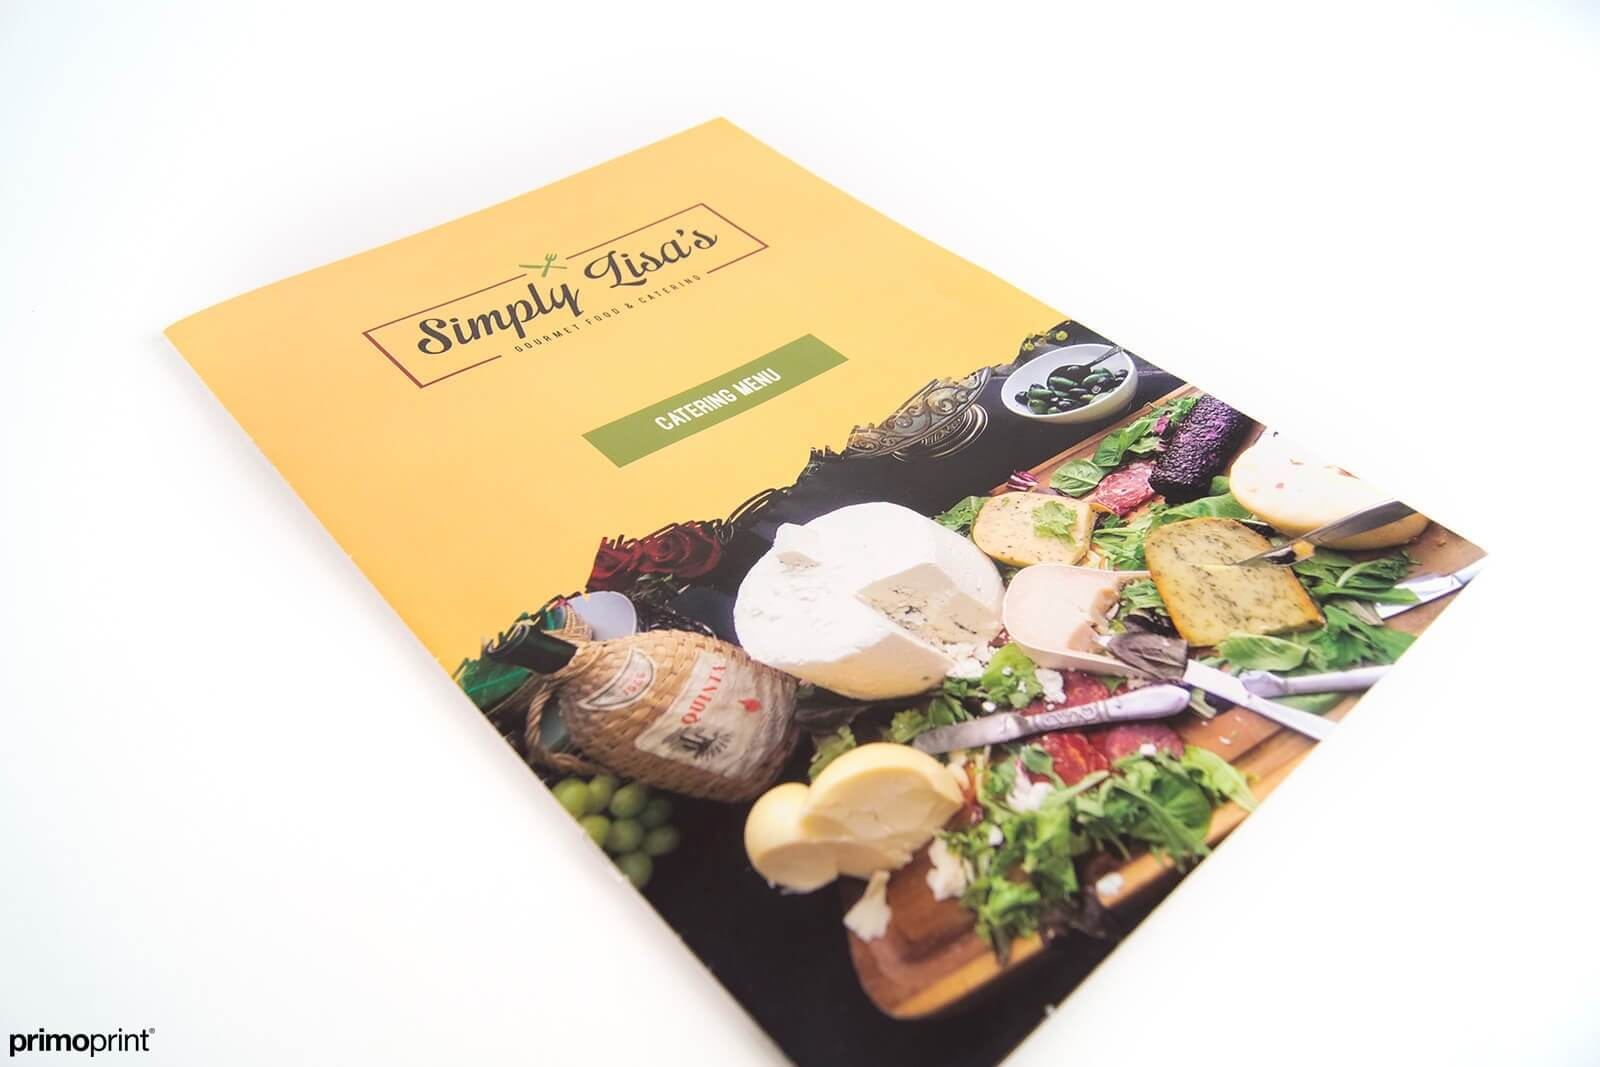 Thicker cover stock with a protective aqueous coating printed by Primoprint.